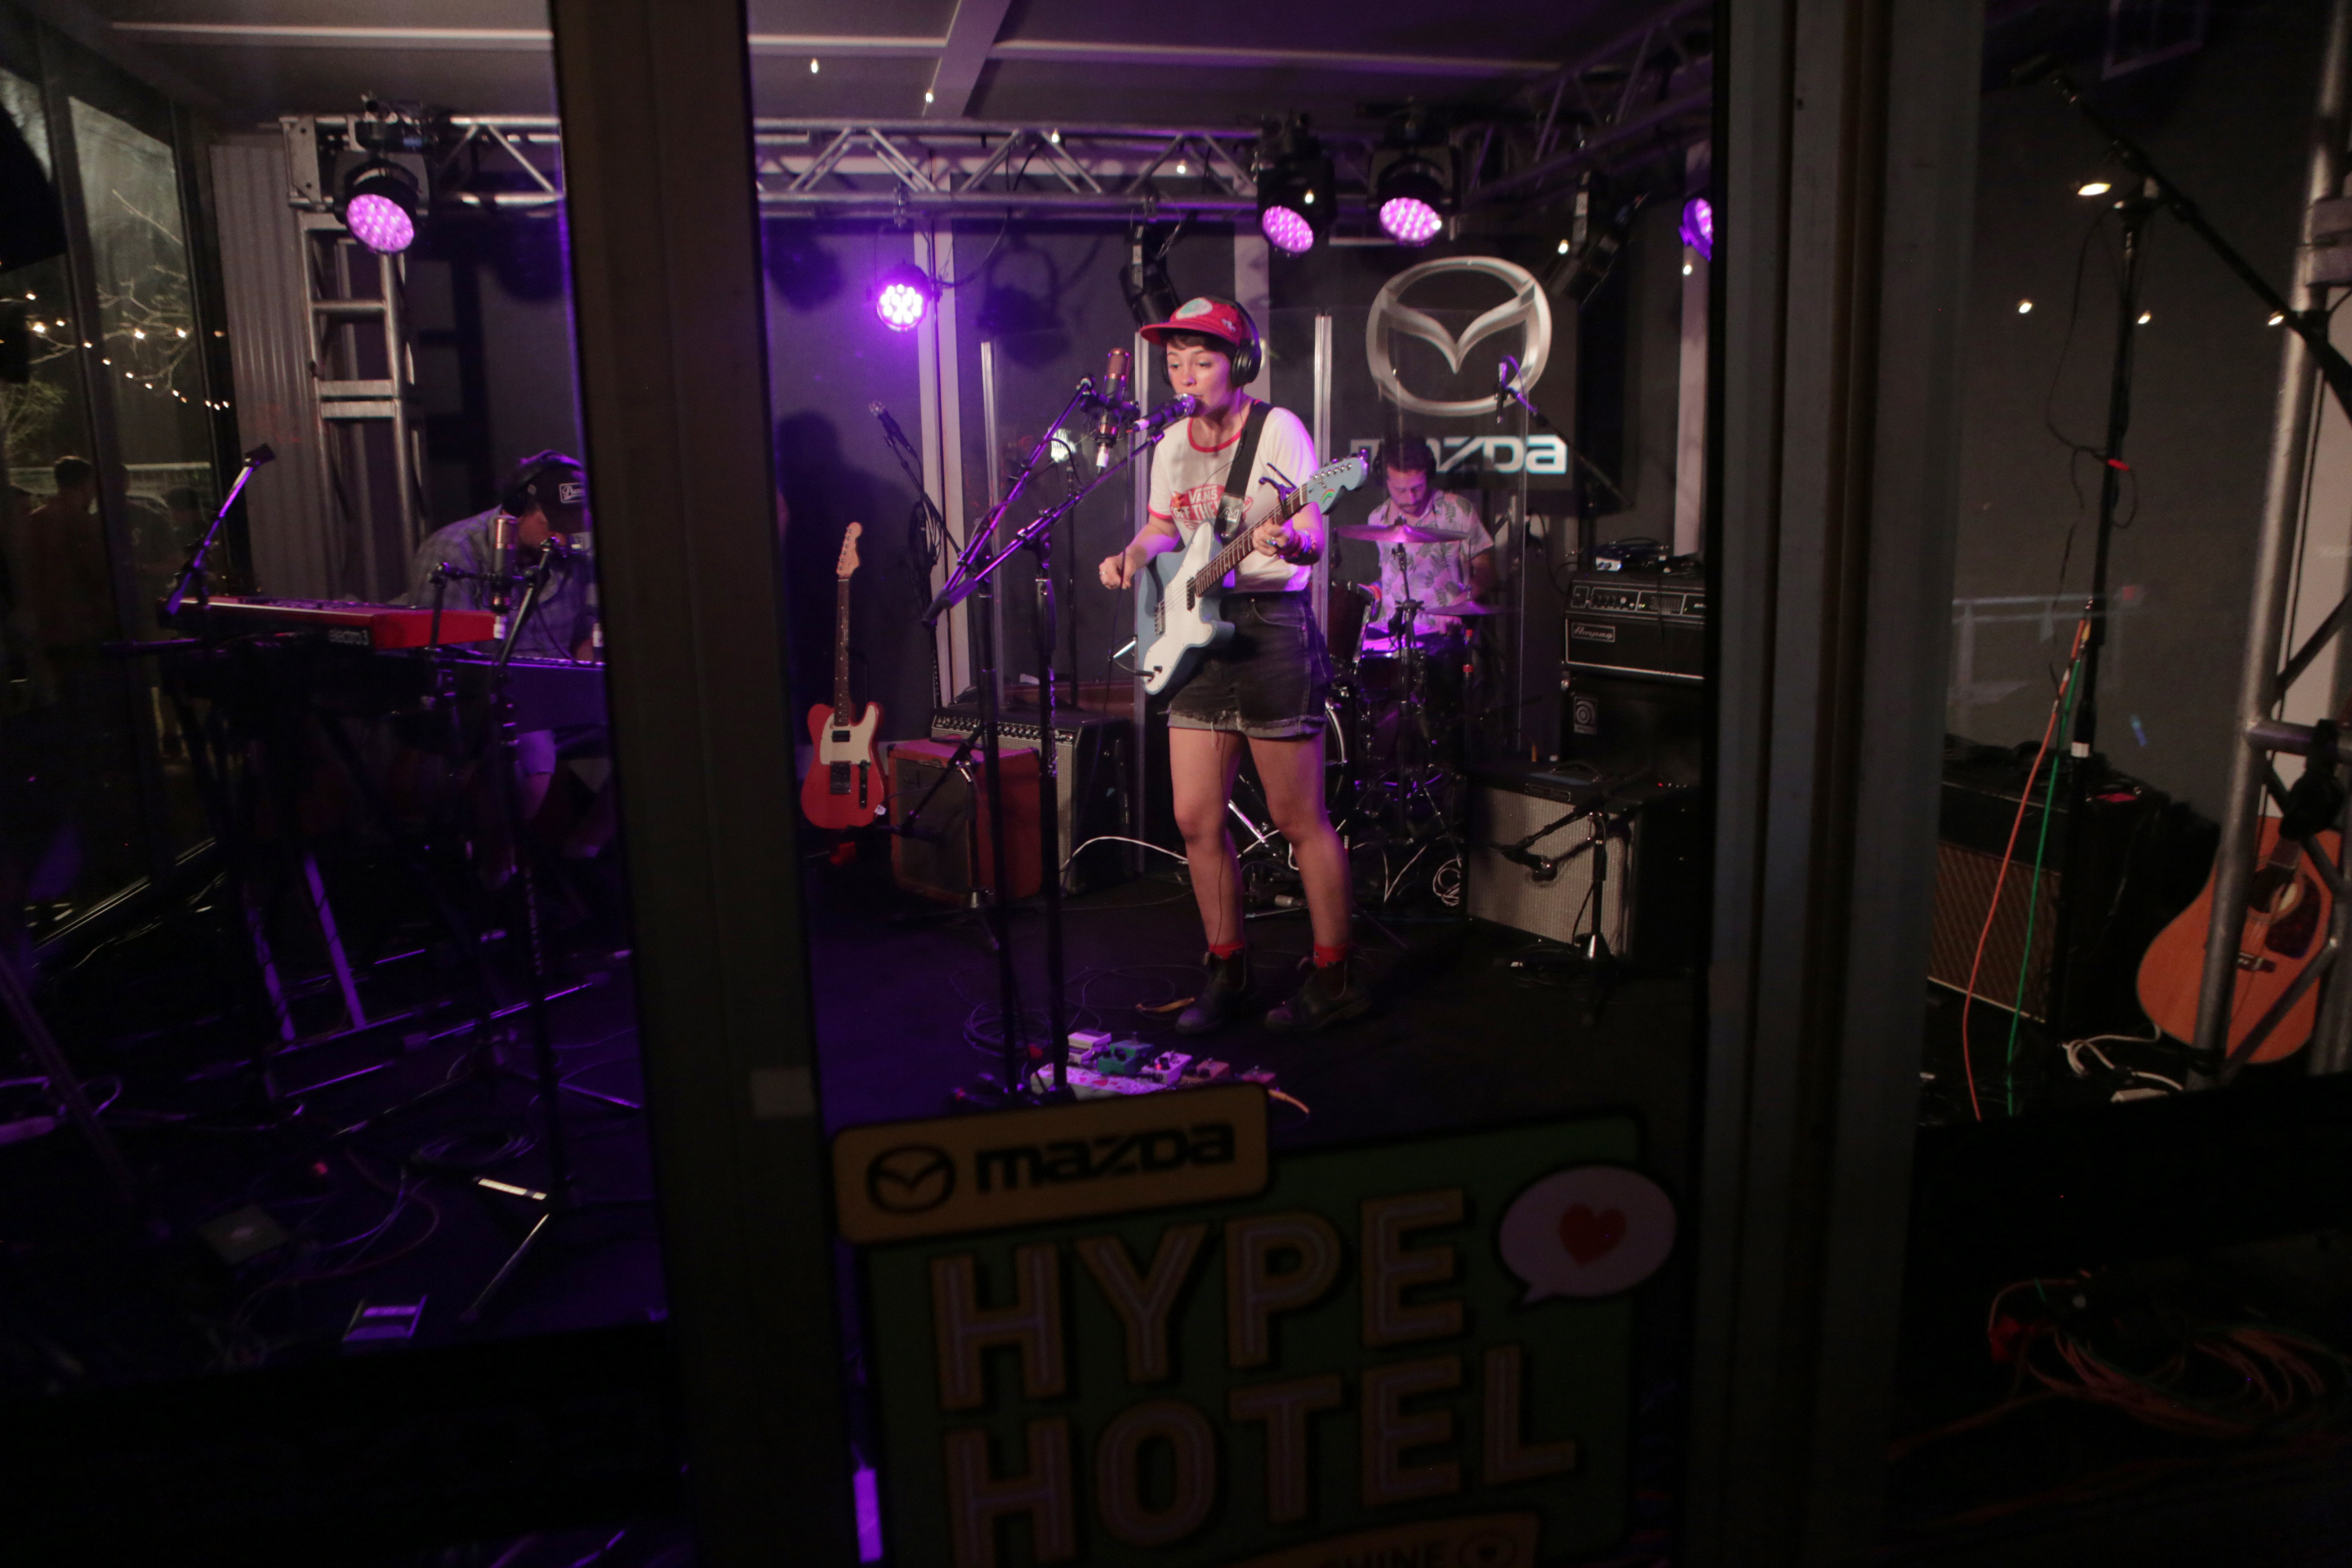 Diet Cig at Hype Hotel